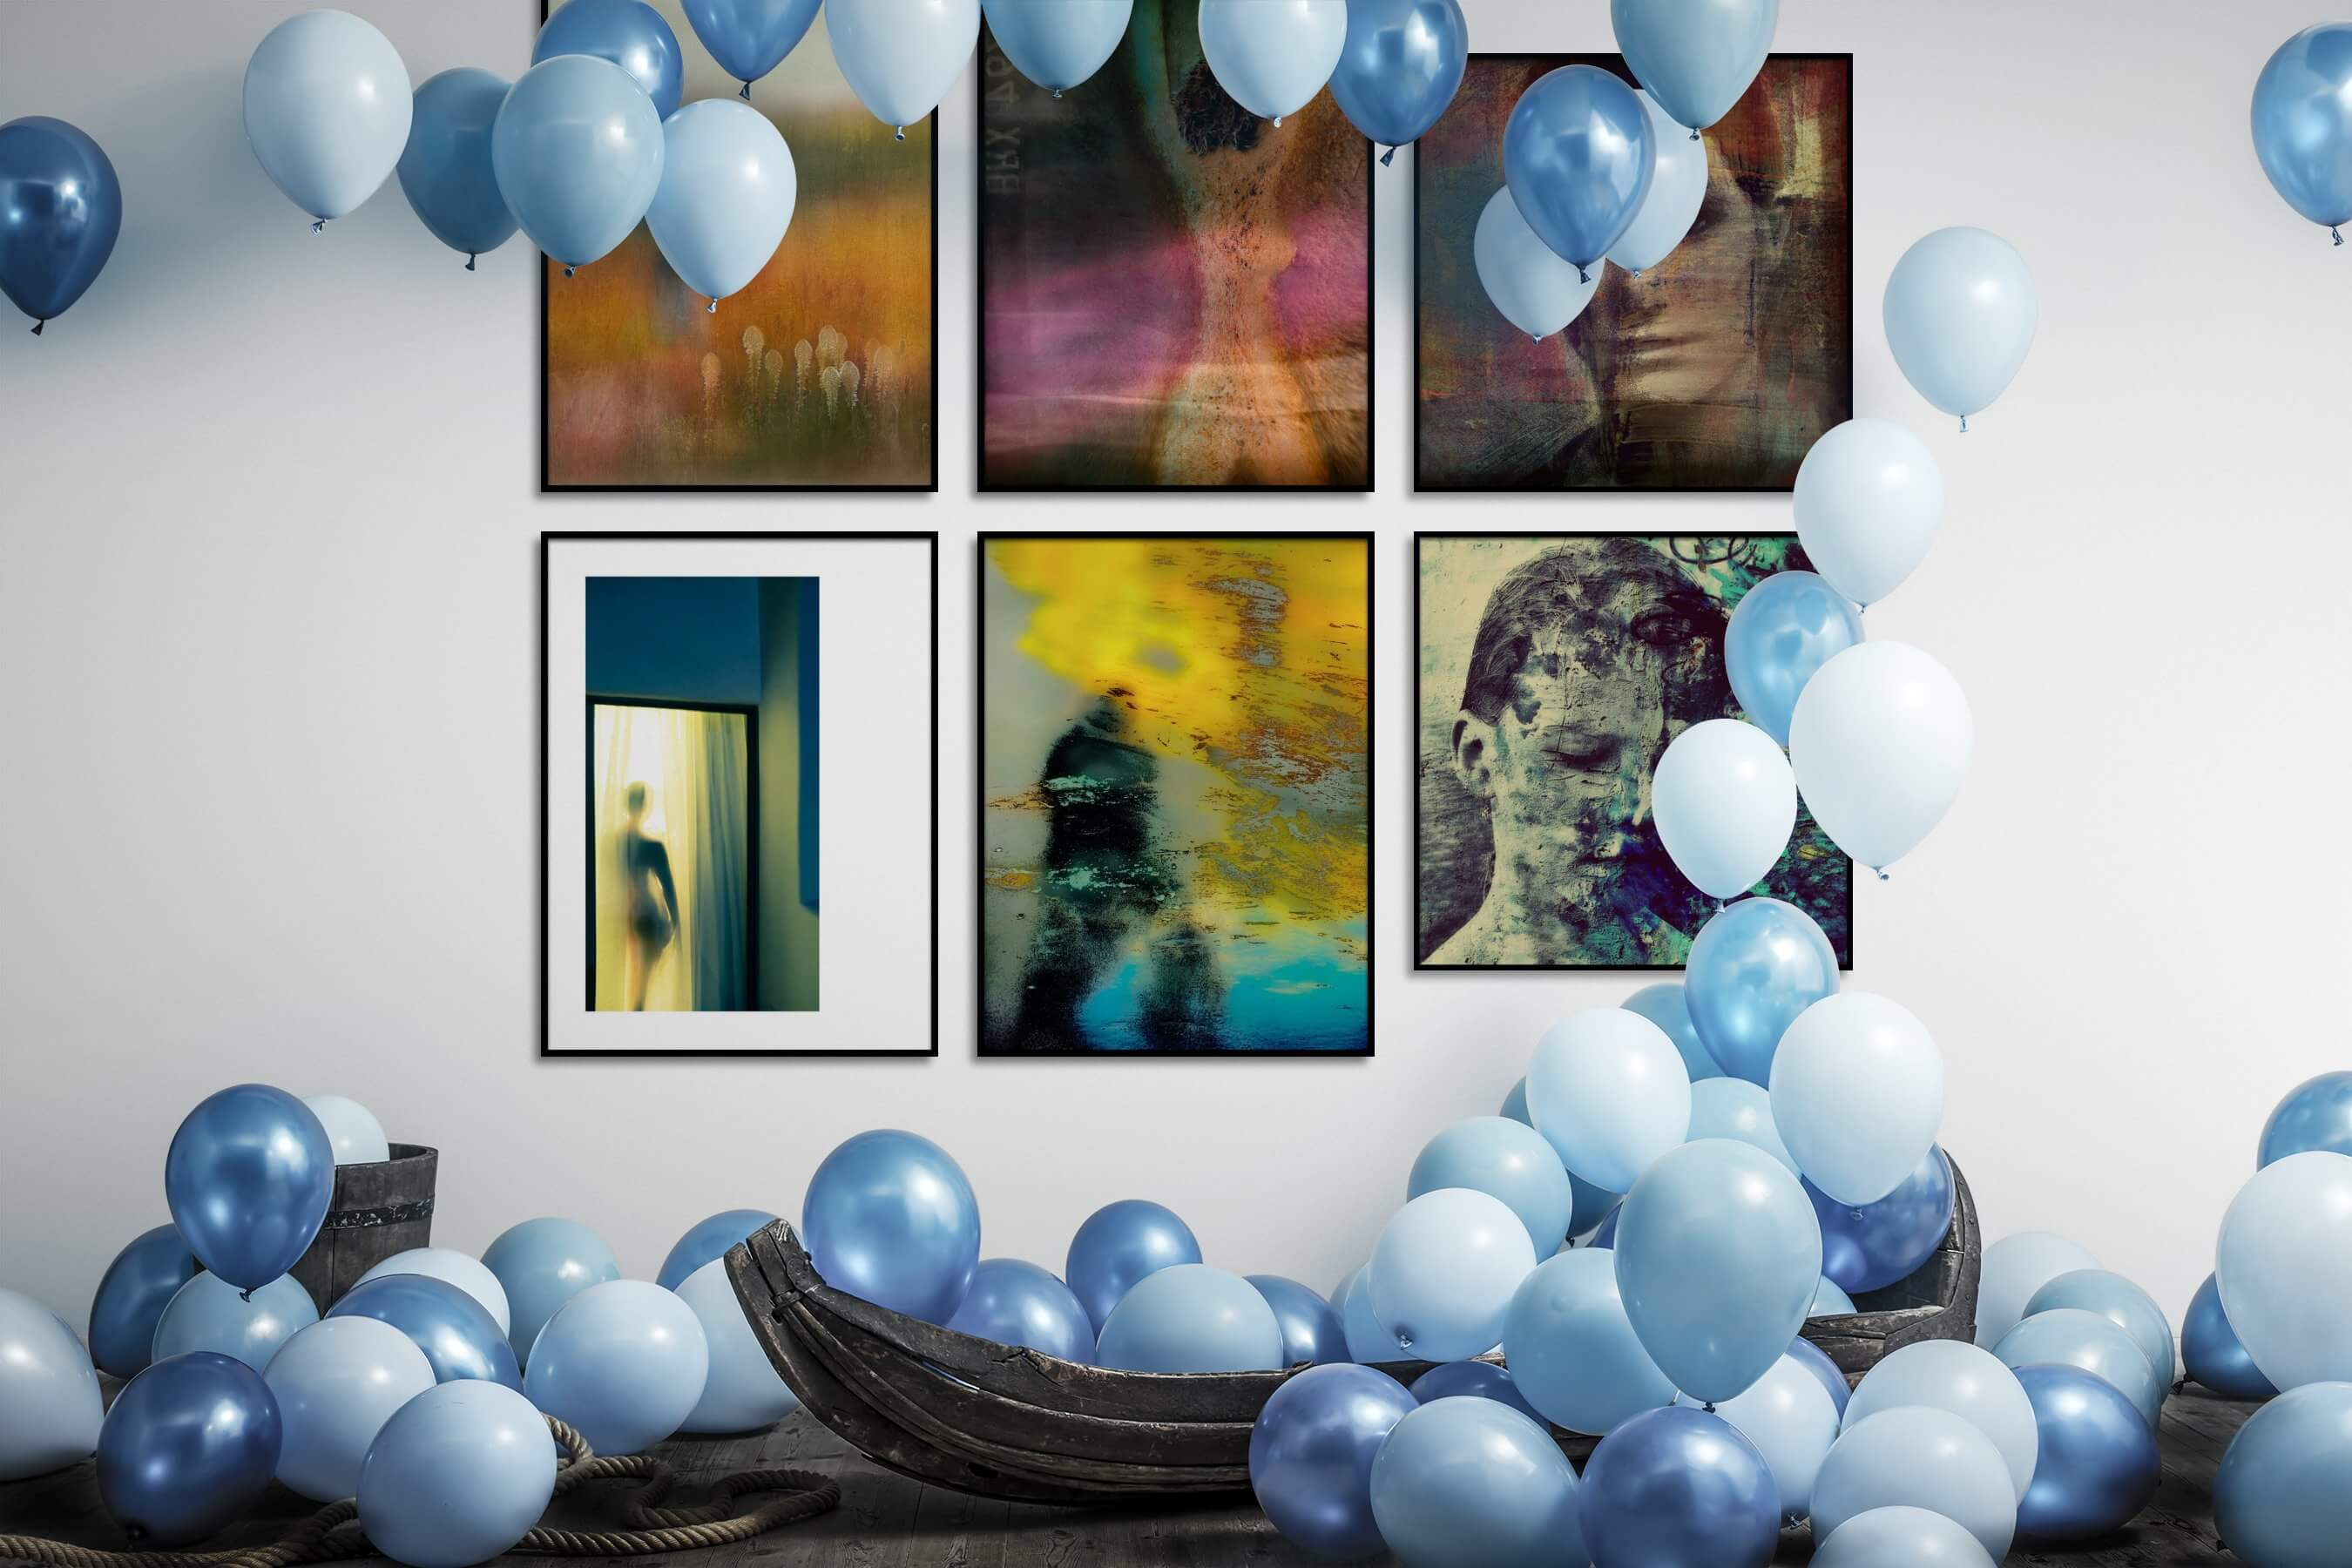 Gallery wall idea with six framed pictures arranged on a wall depicting Artsy and Country Life